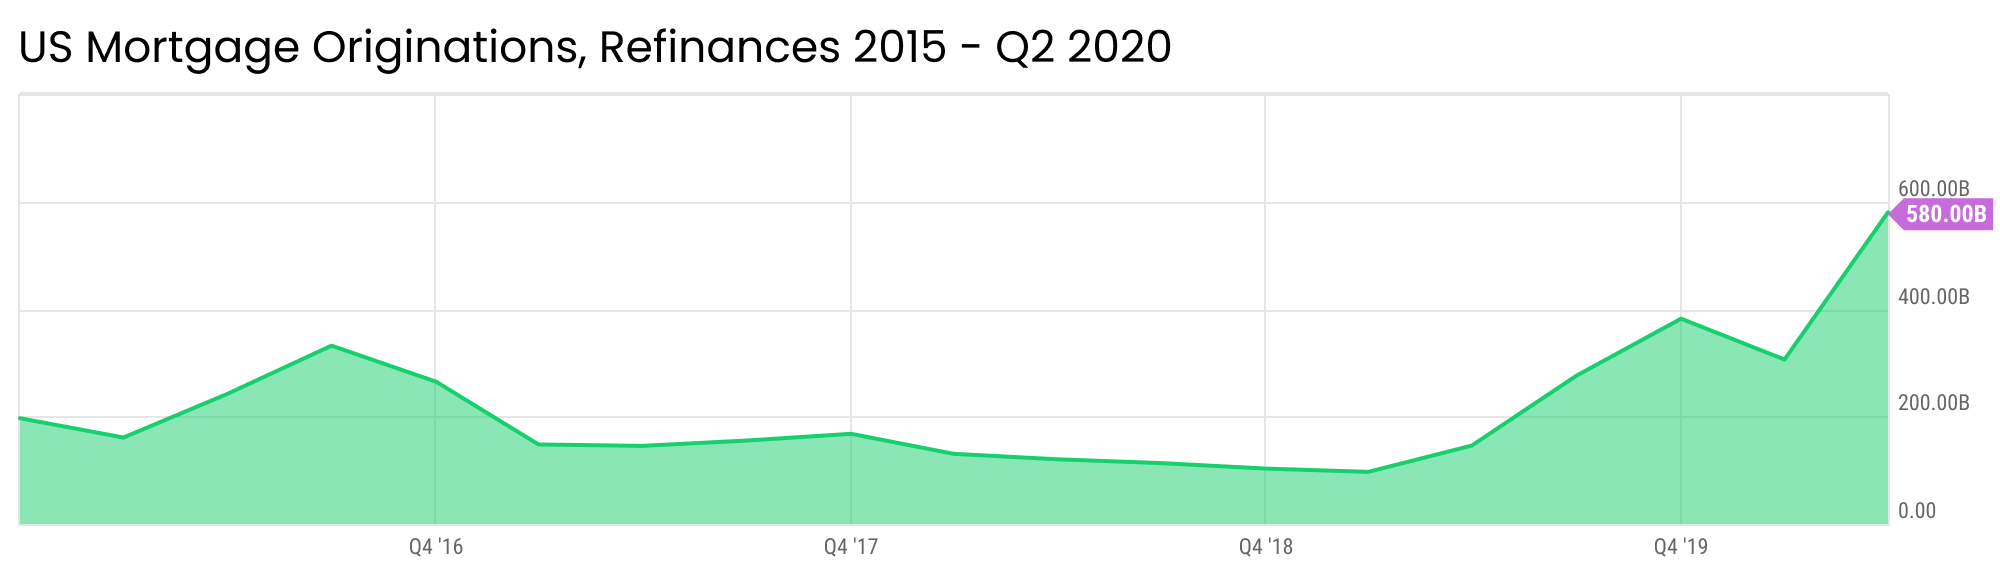 US Mortgage Originations, Refinances 2015-Q2 2020 Graph